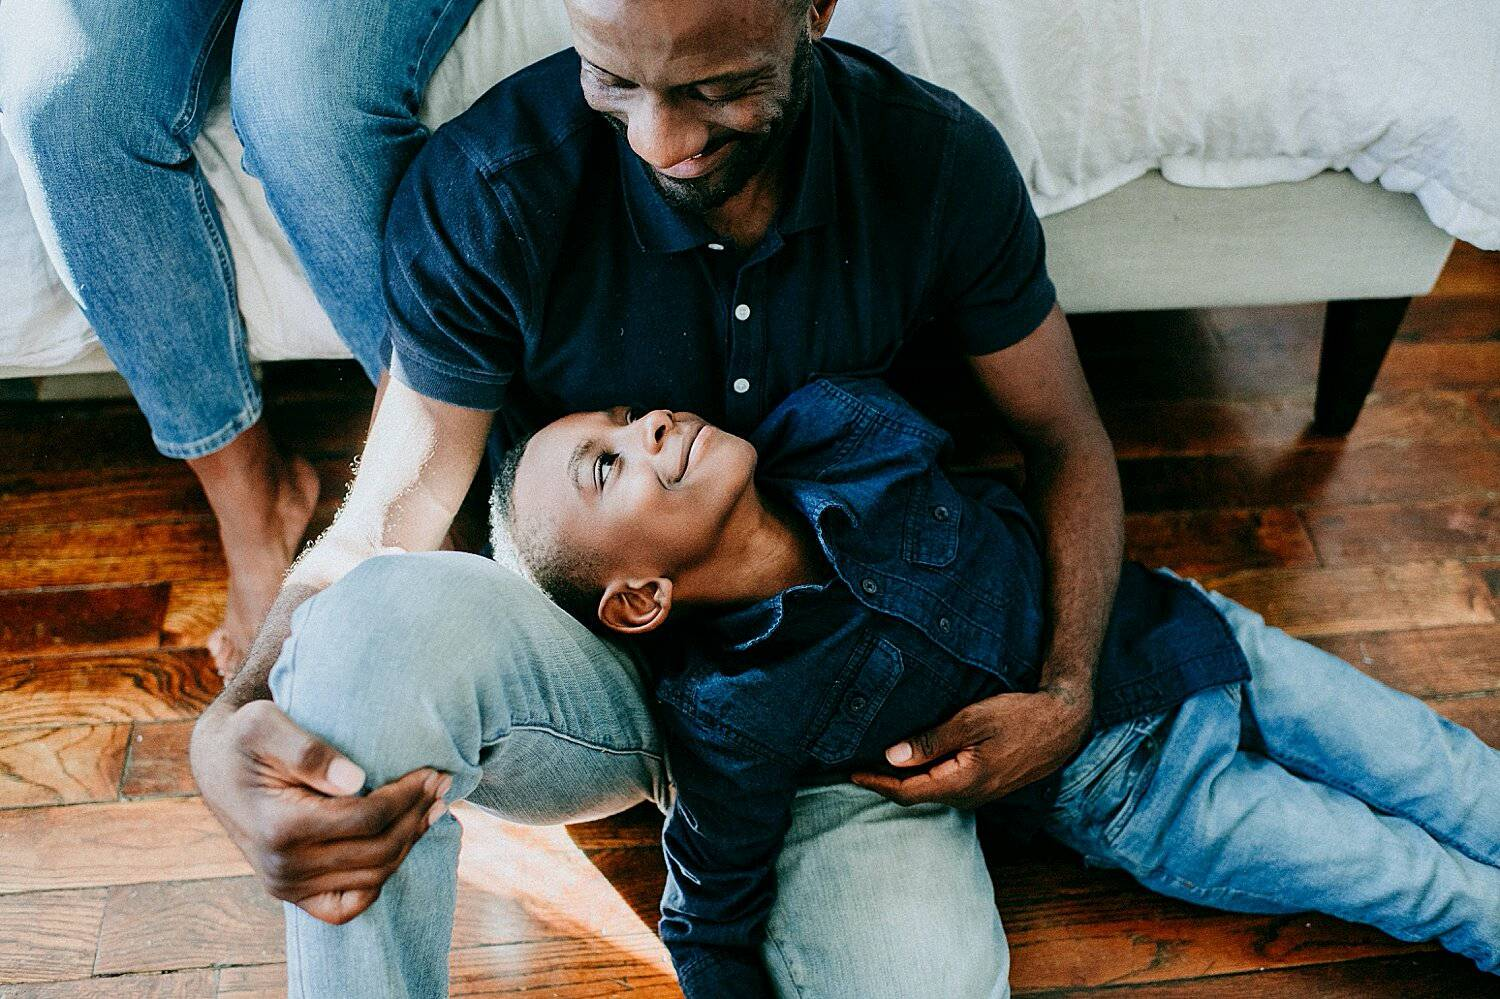 Photo: Yasmina Cowan's in-home lifestyle portrait of a dad sitting on a hardwood floor and leaning against a bed as his son reclines in his lap smiling into his face.